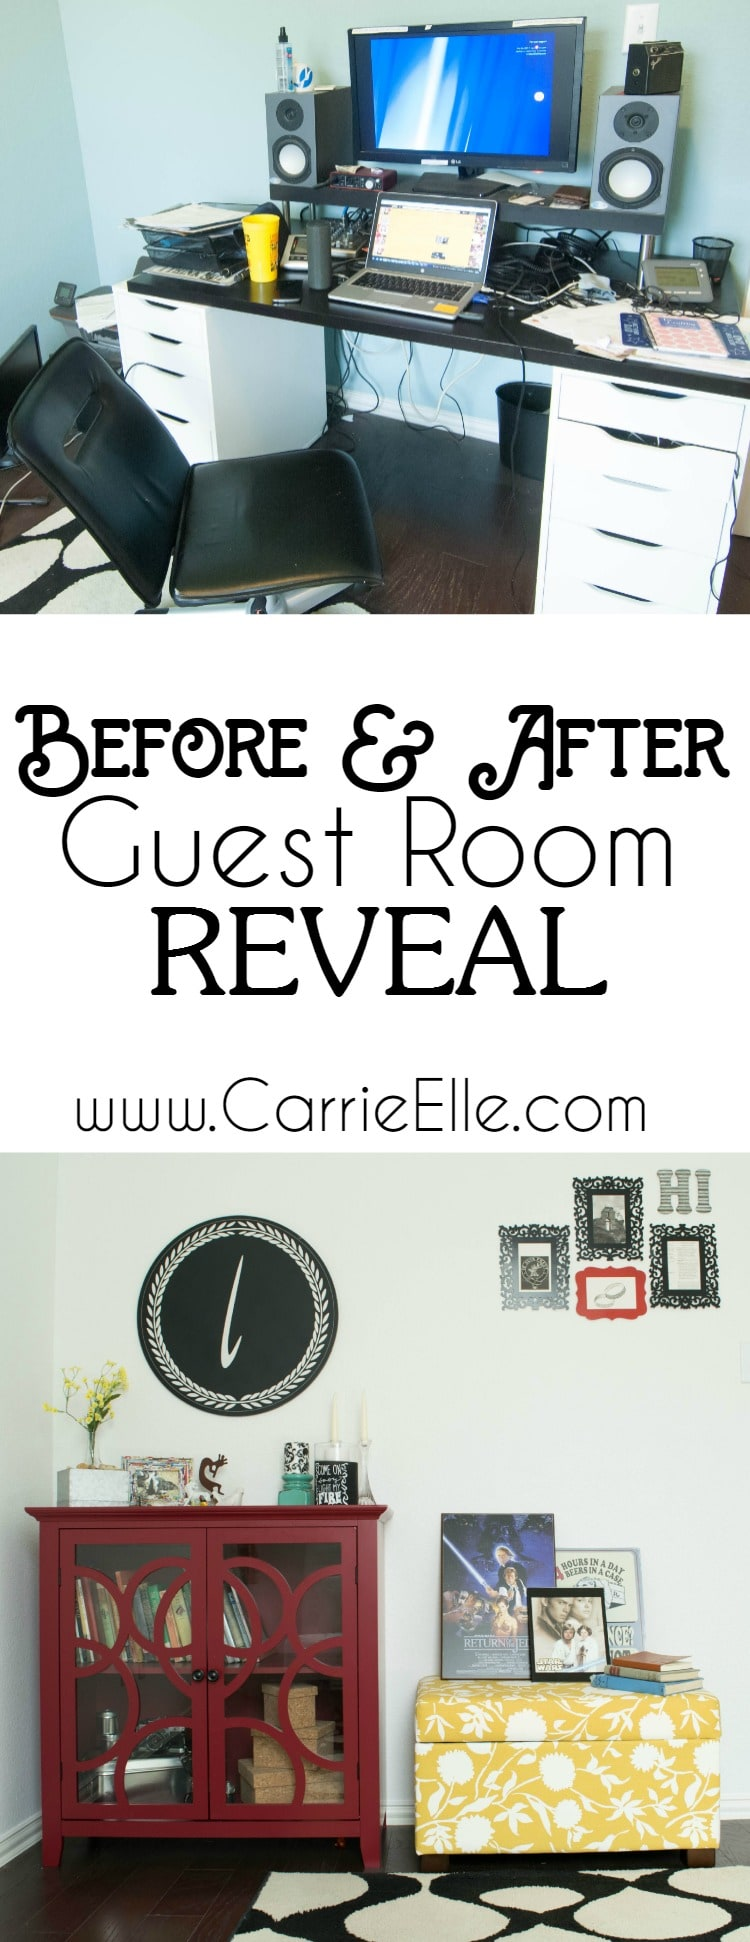 Before and After Guest Room